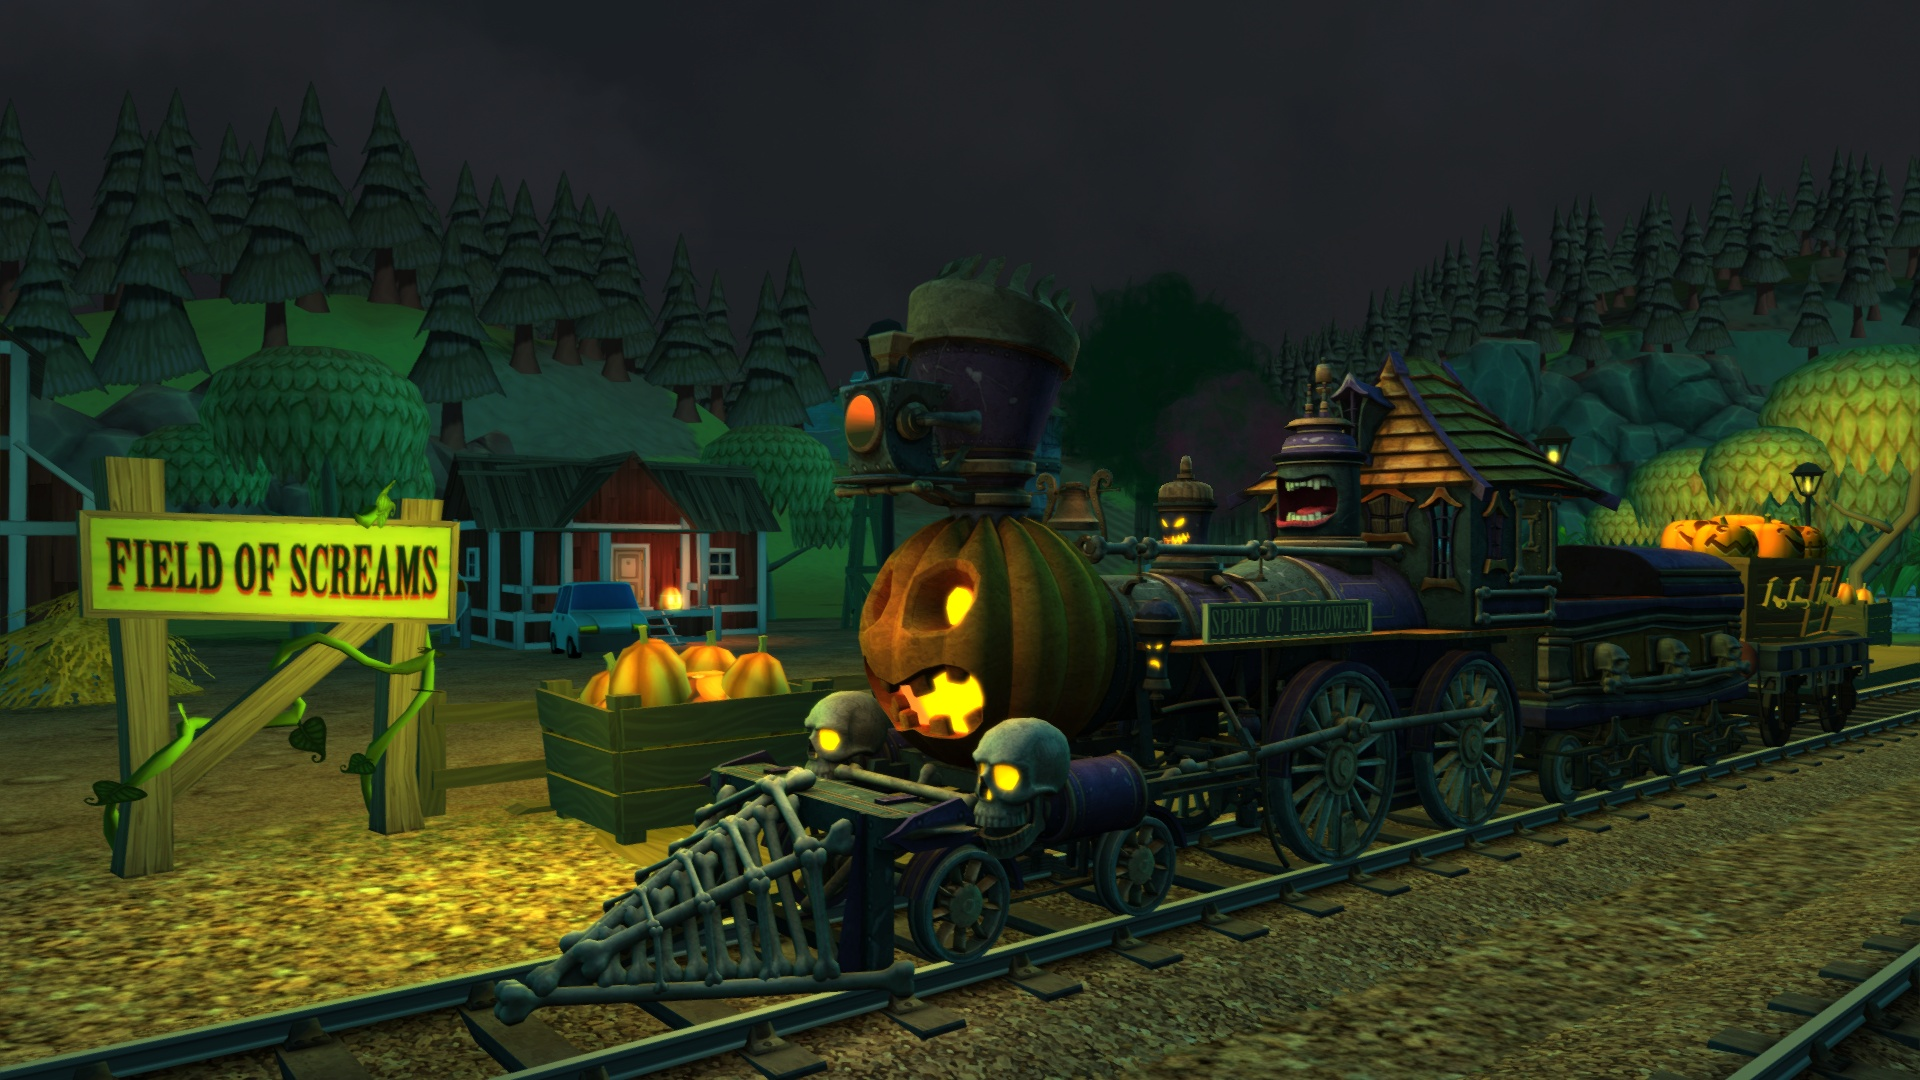 This is how the Train Simulator series celebrates Halloween